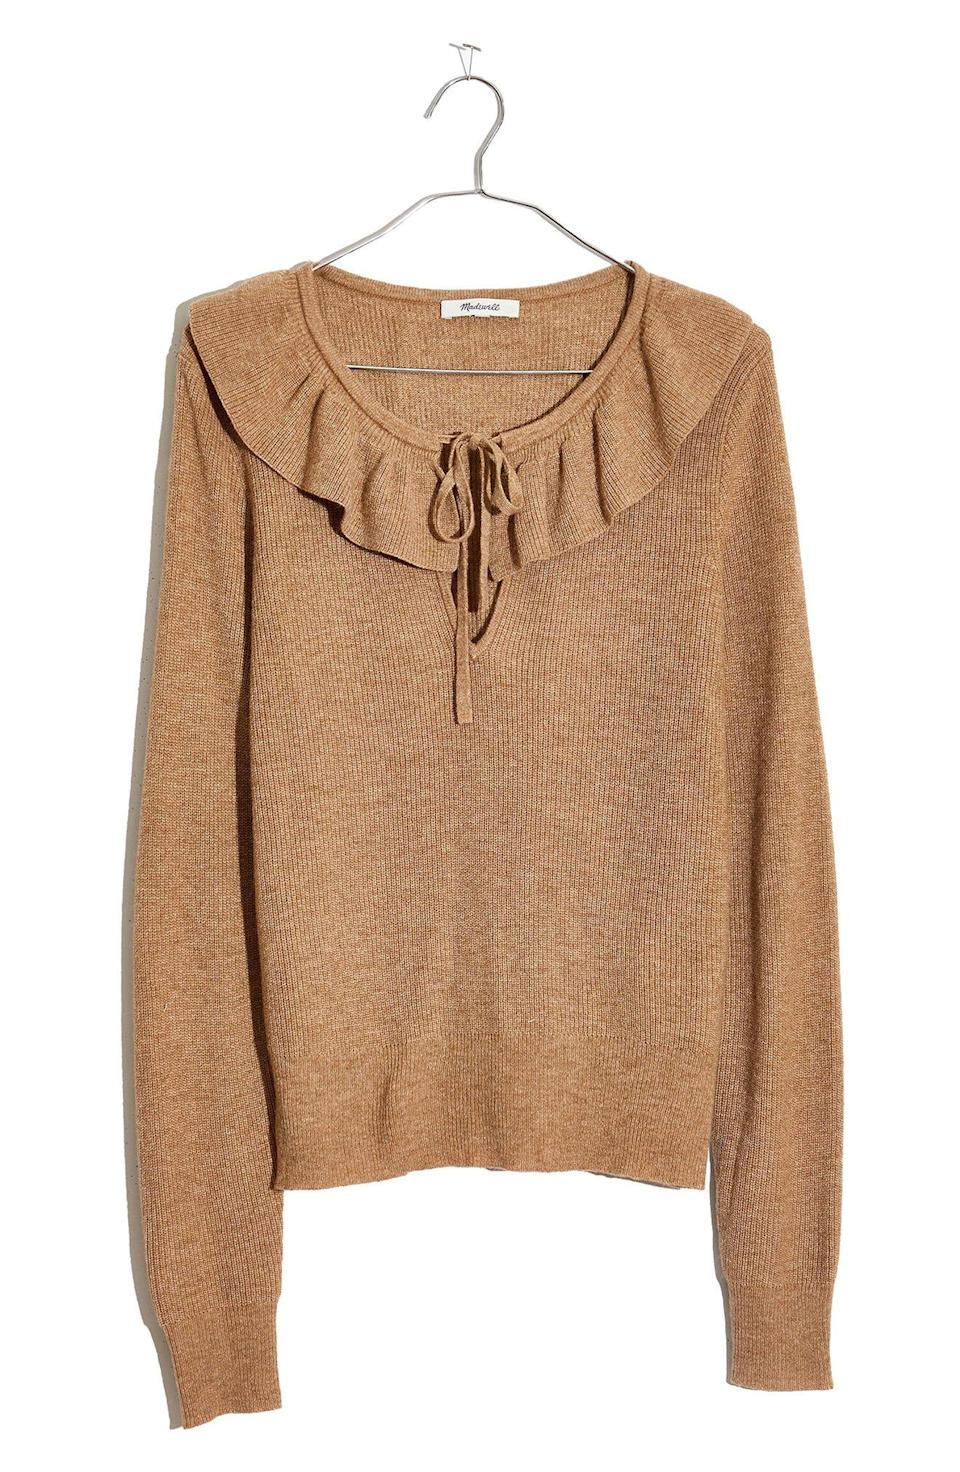 """<p><strong>MADEWELL</strong></p><p>nordstrom.com</p><p><strong>$42.90</strong></p><p><a href=""""https://go.redirectingat.com?id=74968X1596630&url=https%3A%2F%2Fwww.nordstrom.com%2Fs%2Fmadewell-tie-neck-ruffle-pullover-sweater%2F5707537&sref=https%3A%2F%2Fwww.elle.com%2Ffashion%2Fshopping%2Fg34741930%2Fnordstrom-12-days-of-cyber-savings-sale%2F"""" rel=""""nofollow noopener"""" target=""""_blank"""" data-ylk=""""slk:Shop Now"""" class=""""link rapid-noclick-resp"""">Shop Now</a></p>"""